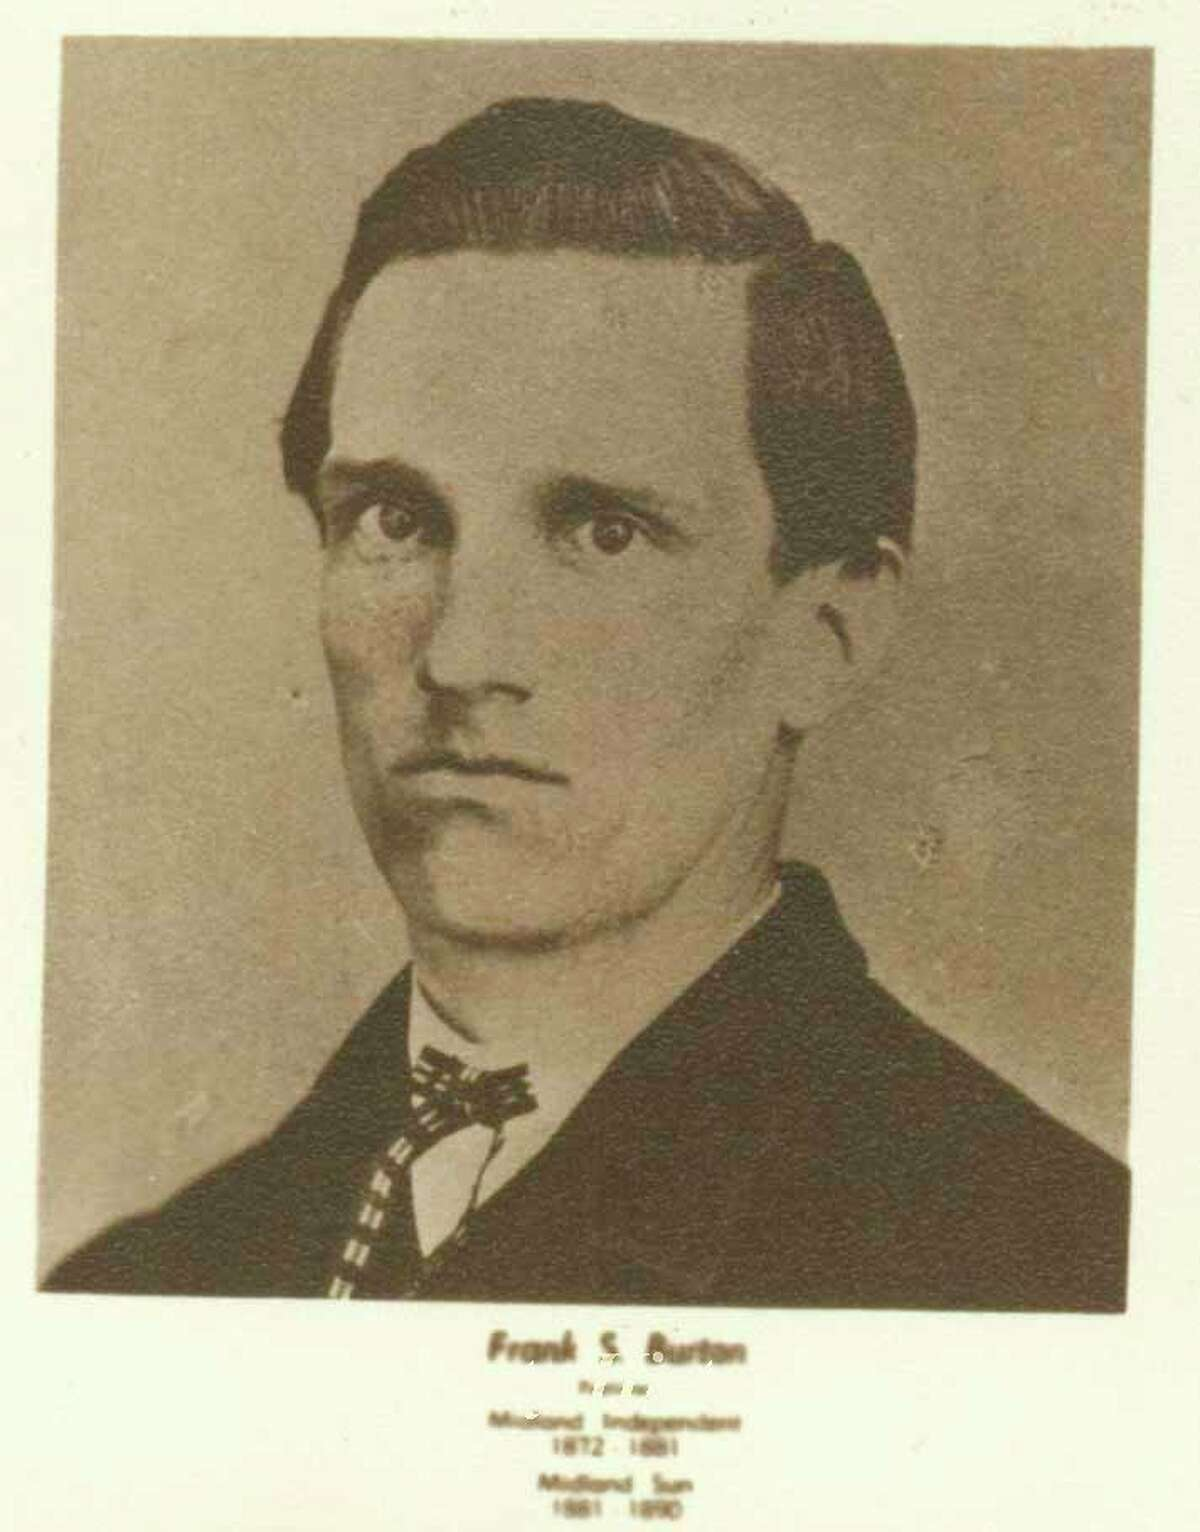 F.S. Button (Midland County Historical Society)